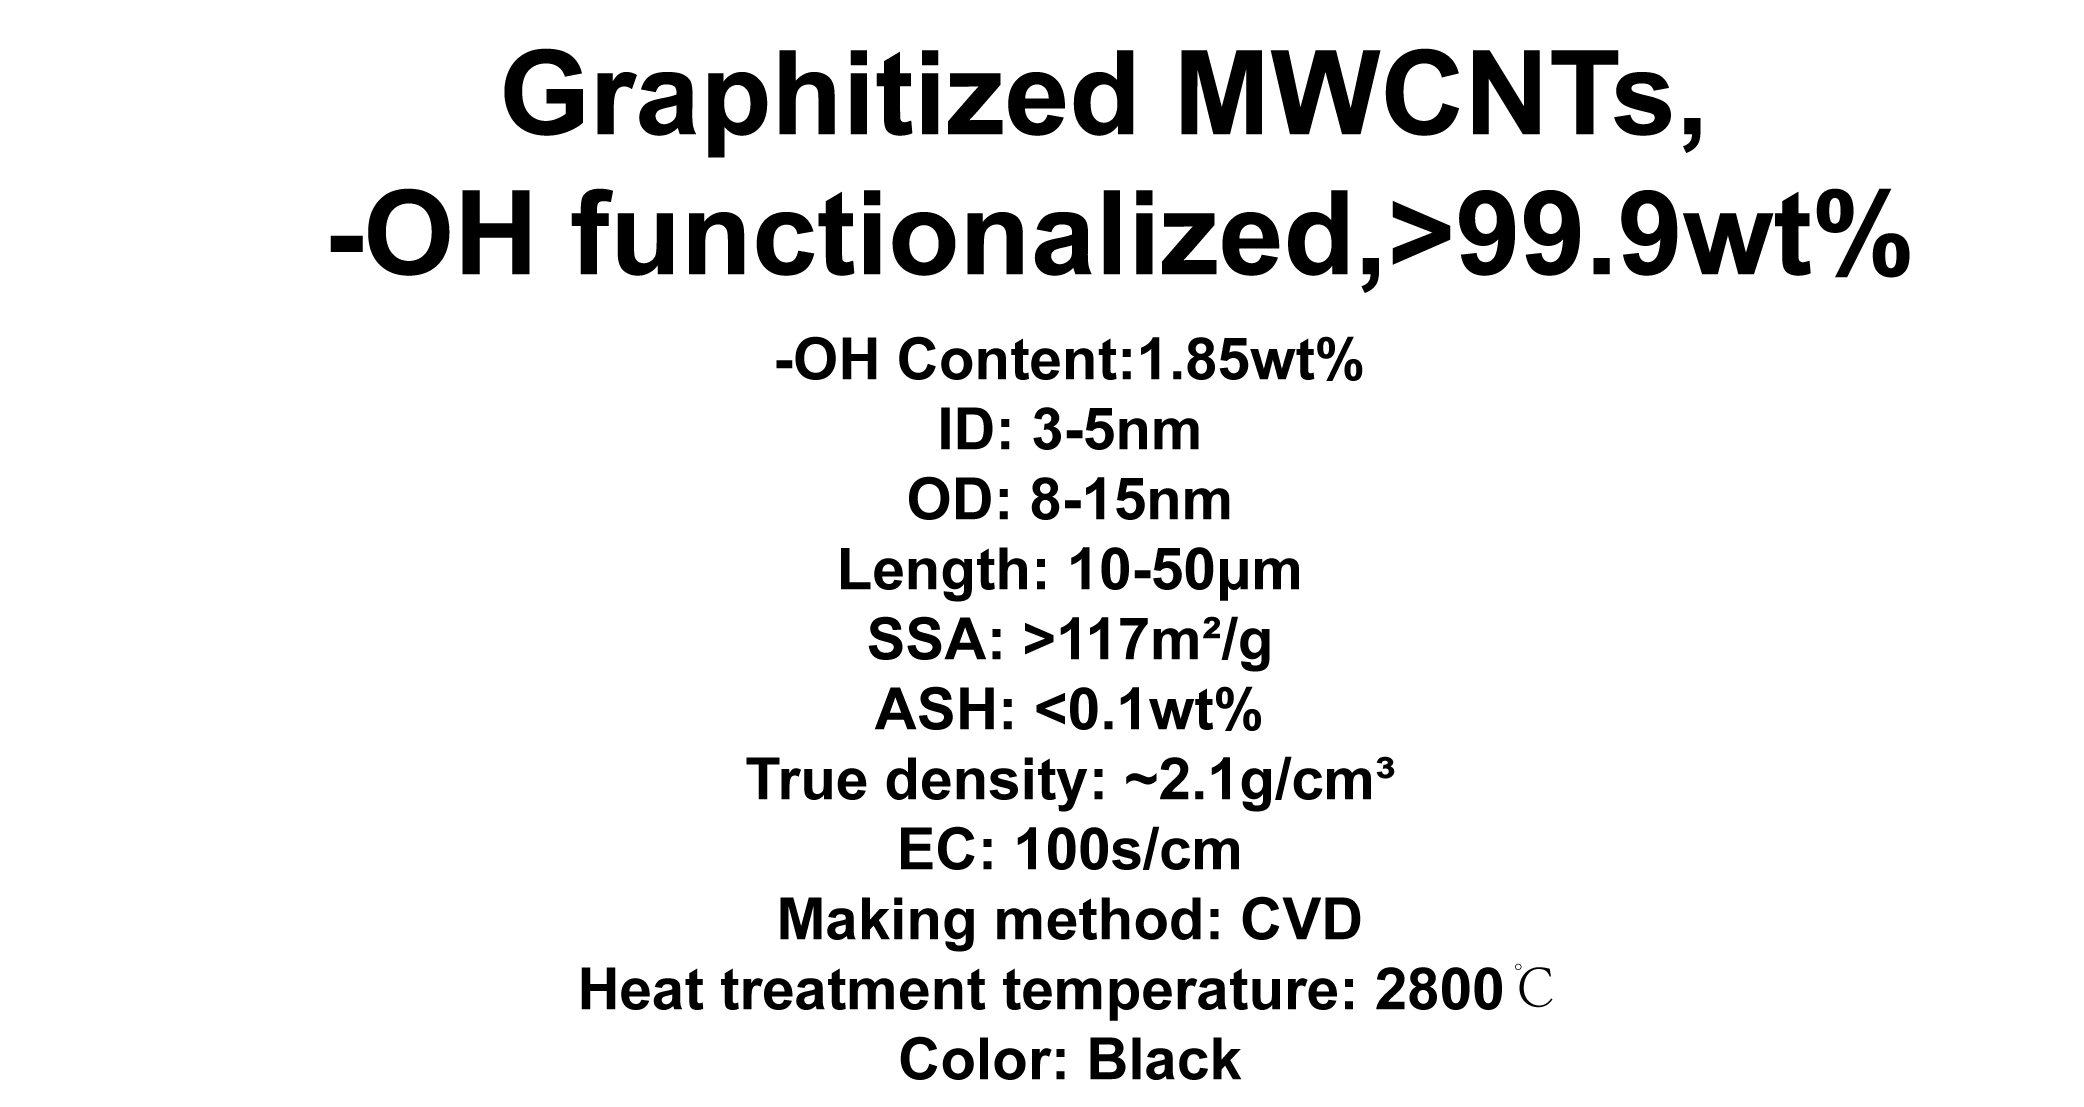 Graphitized MWCNTs, -OH functionalized (TNGMH2)